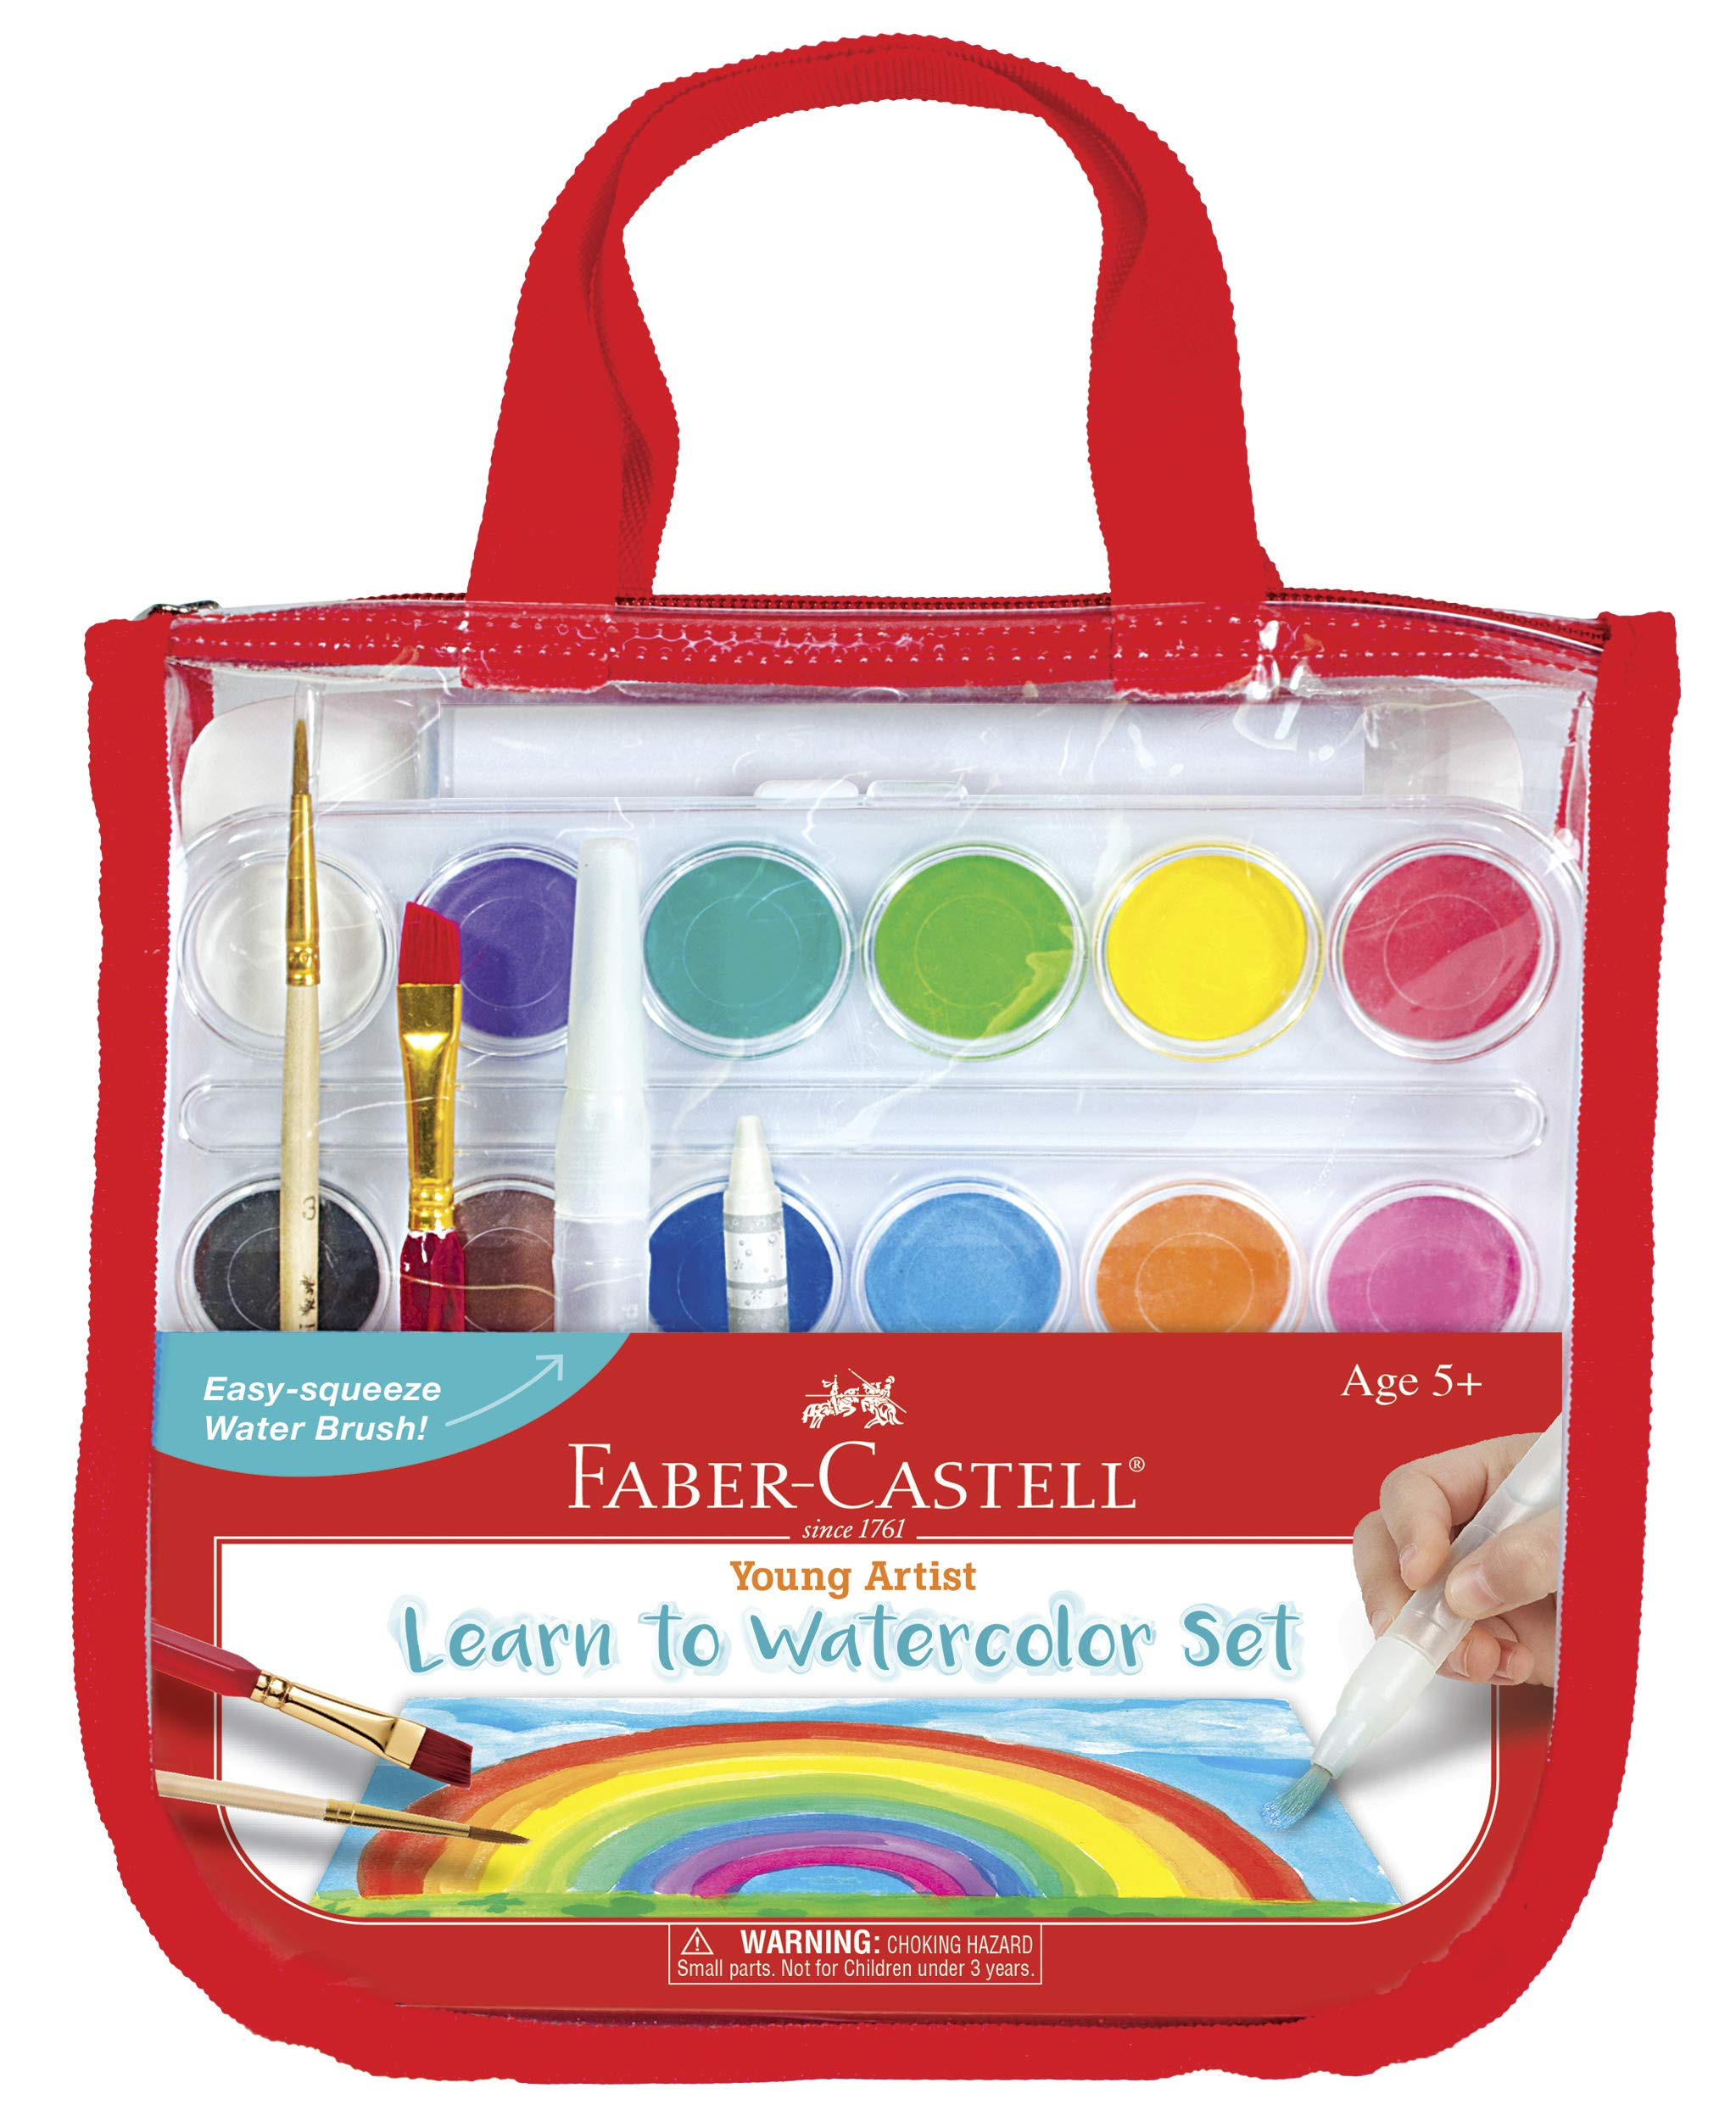 Faber-Castell Learn to Watercolor Set - Complete Watercolor Paint and Paper Beginner Set - Washable Paint Set for Kids by Faber Castell